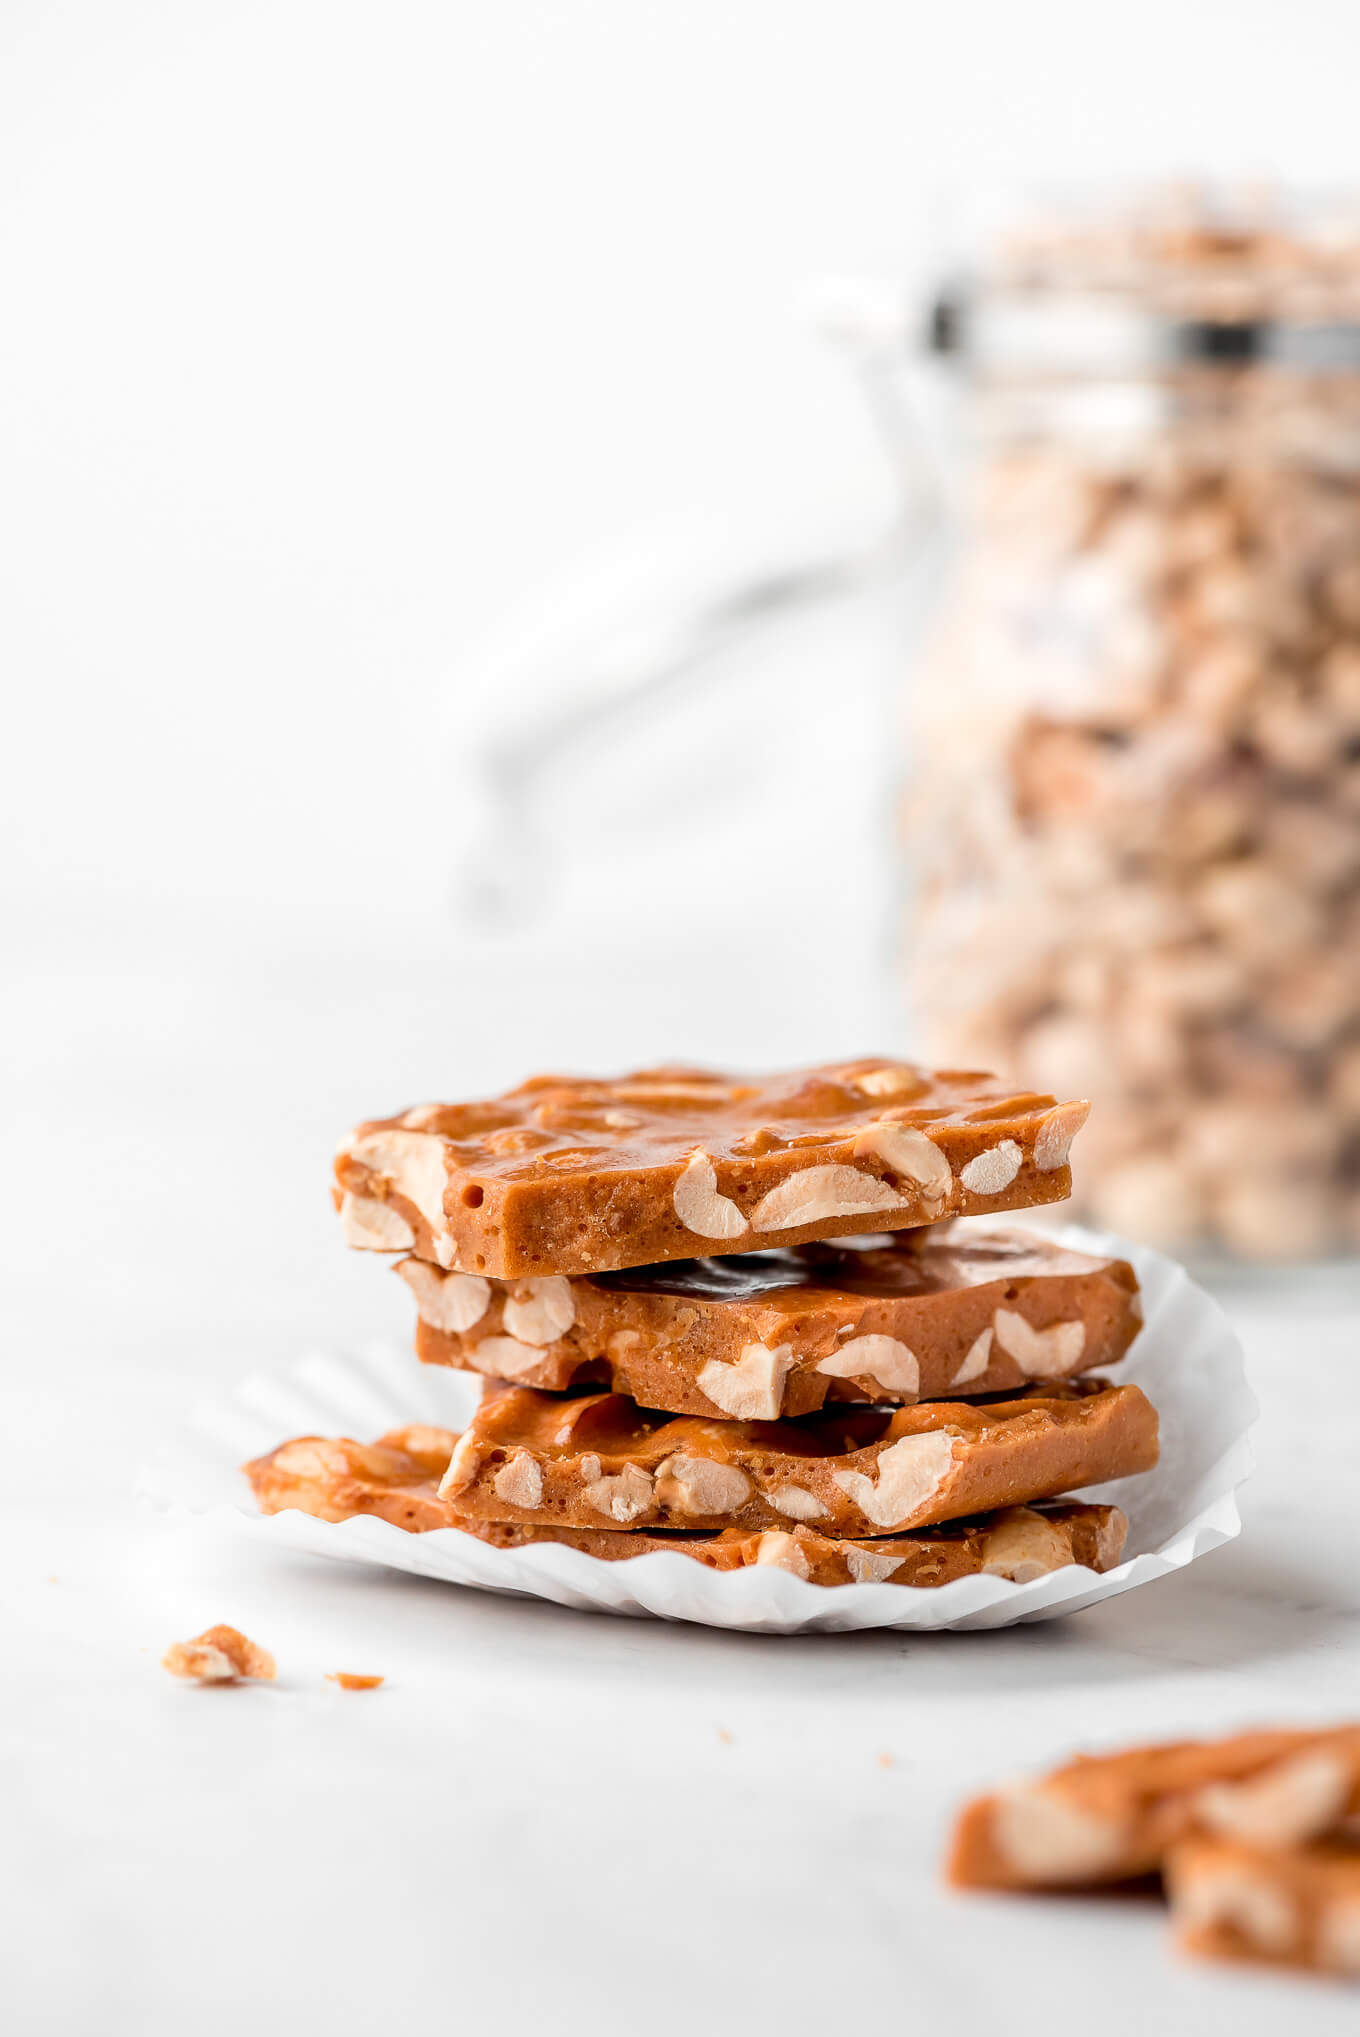 Pieces of Peanut Brittle stacked on top of each other on a cupcake paper liner and a jar of peanuts in the background.